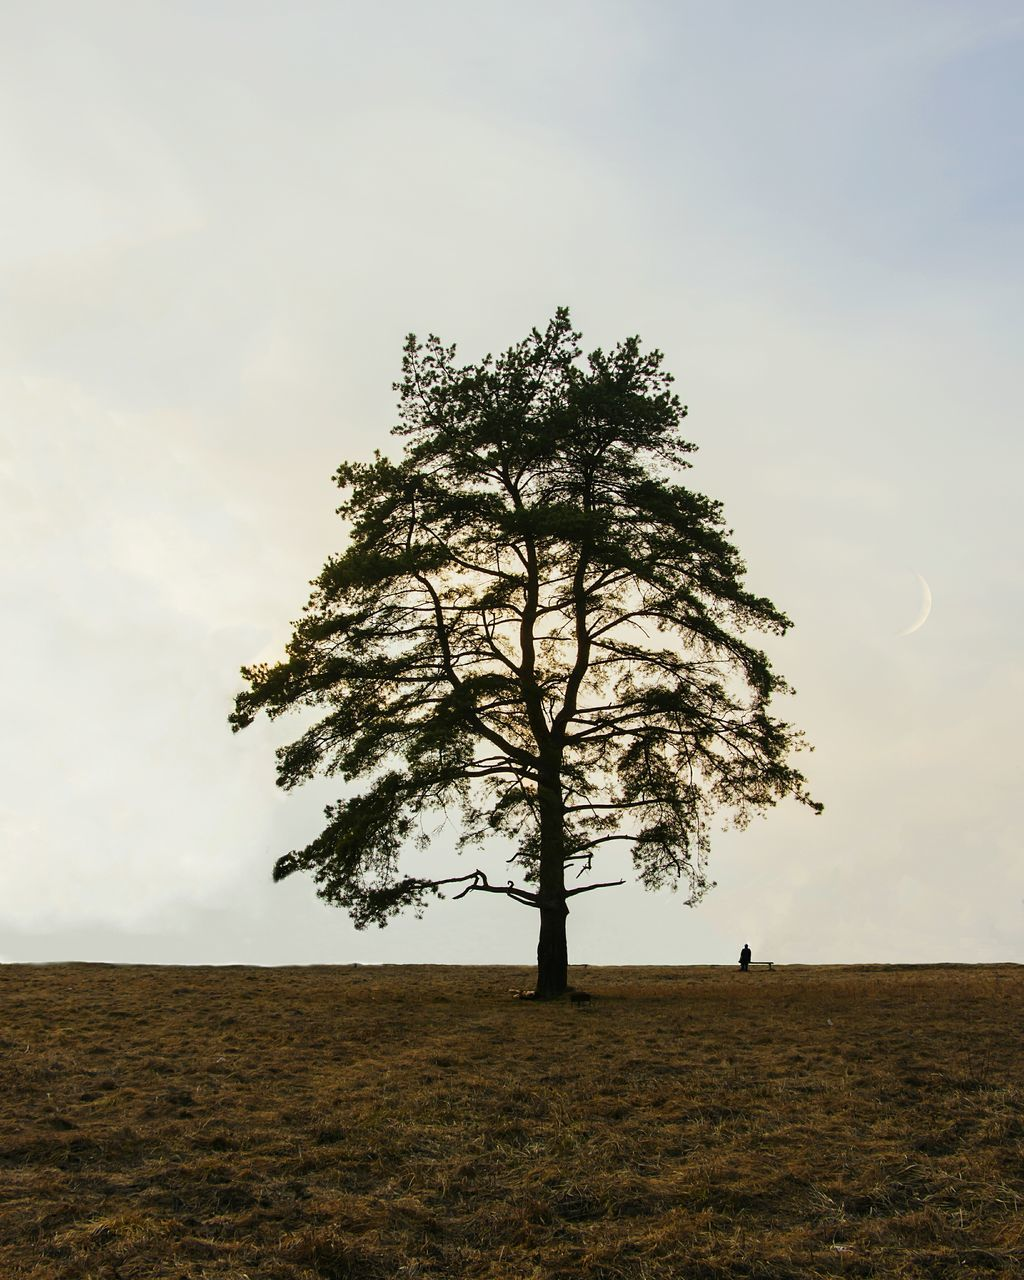 Tree On Grassy Field Against Sky